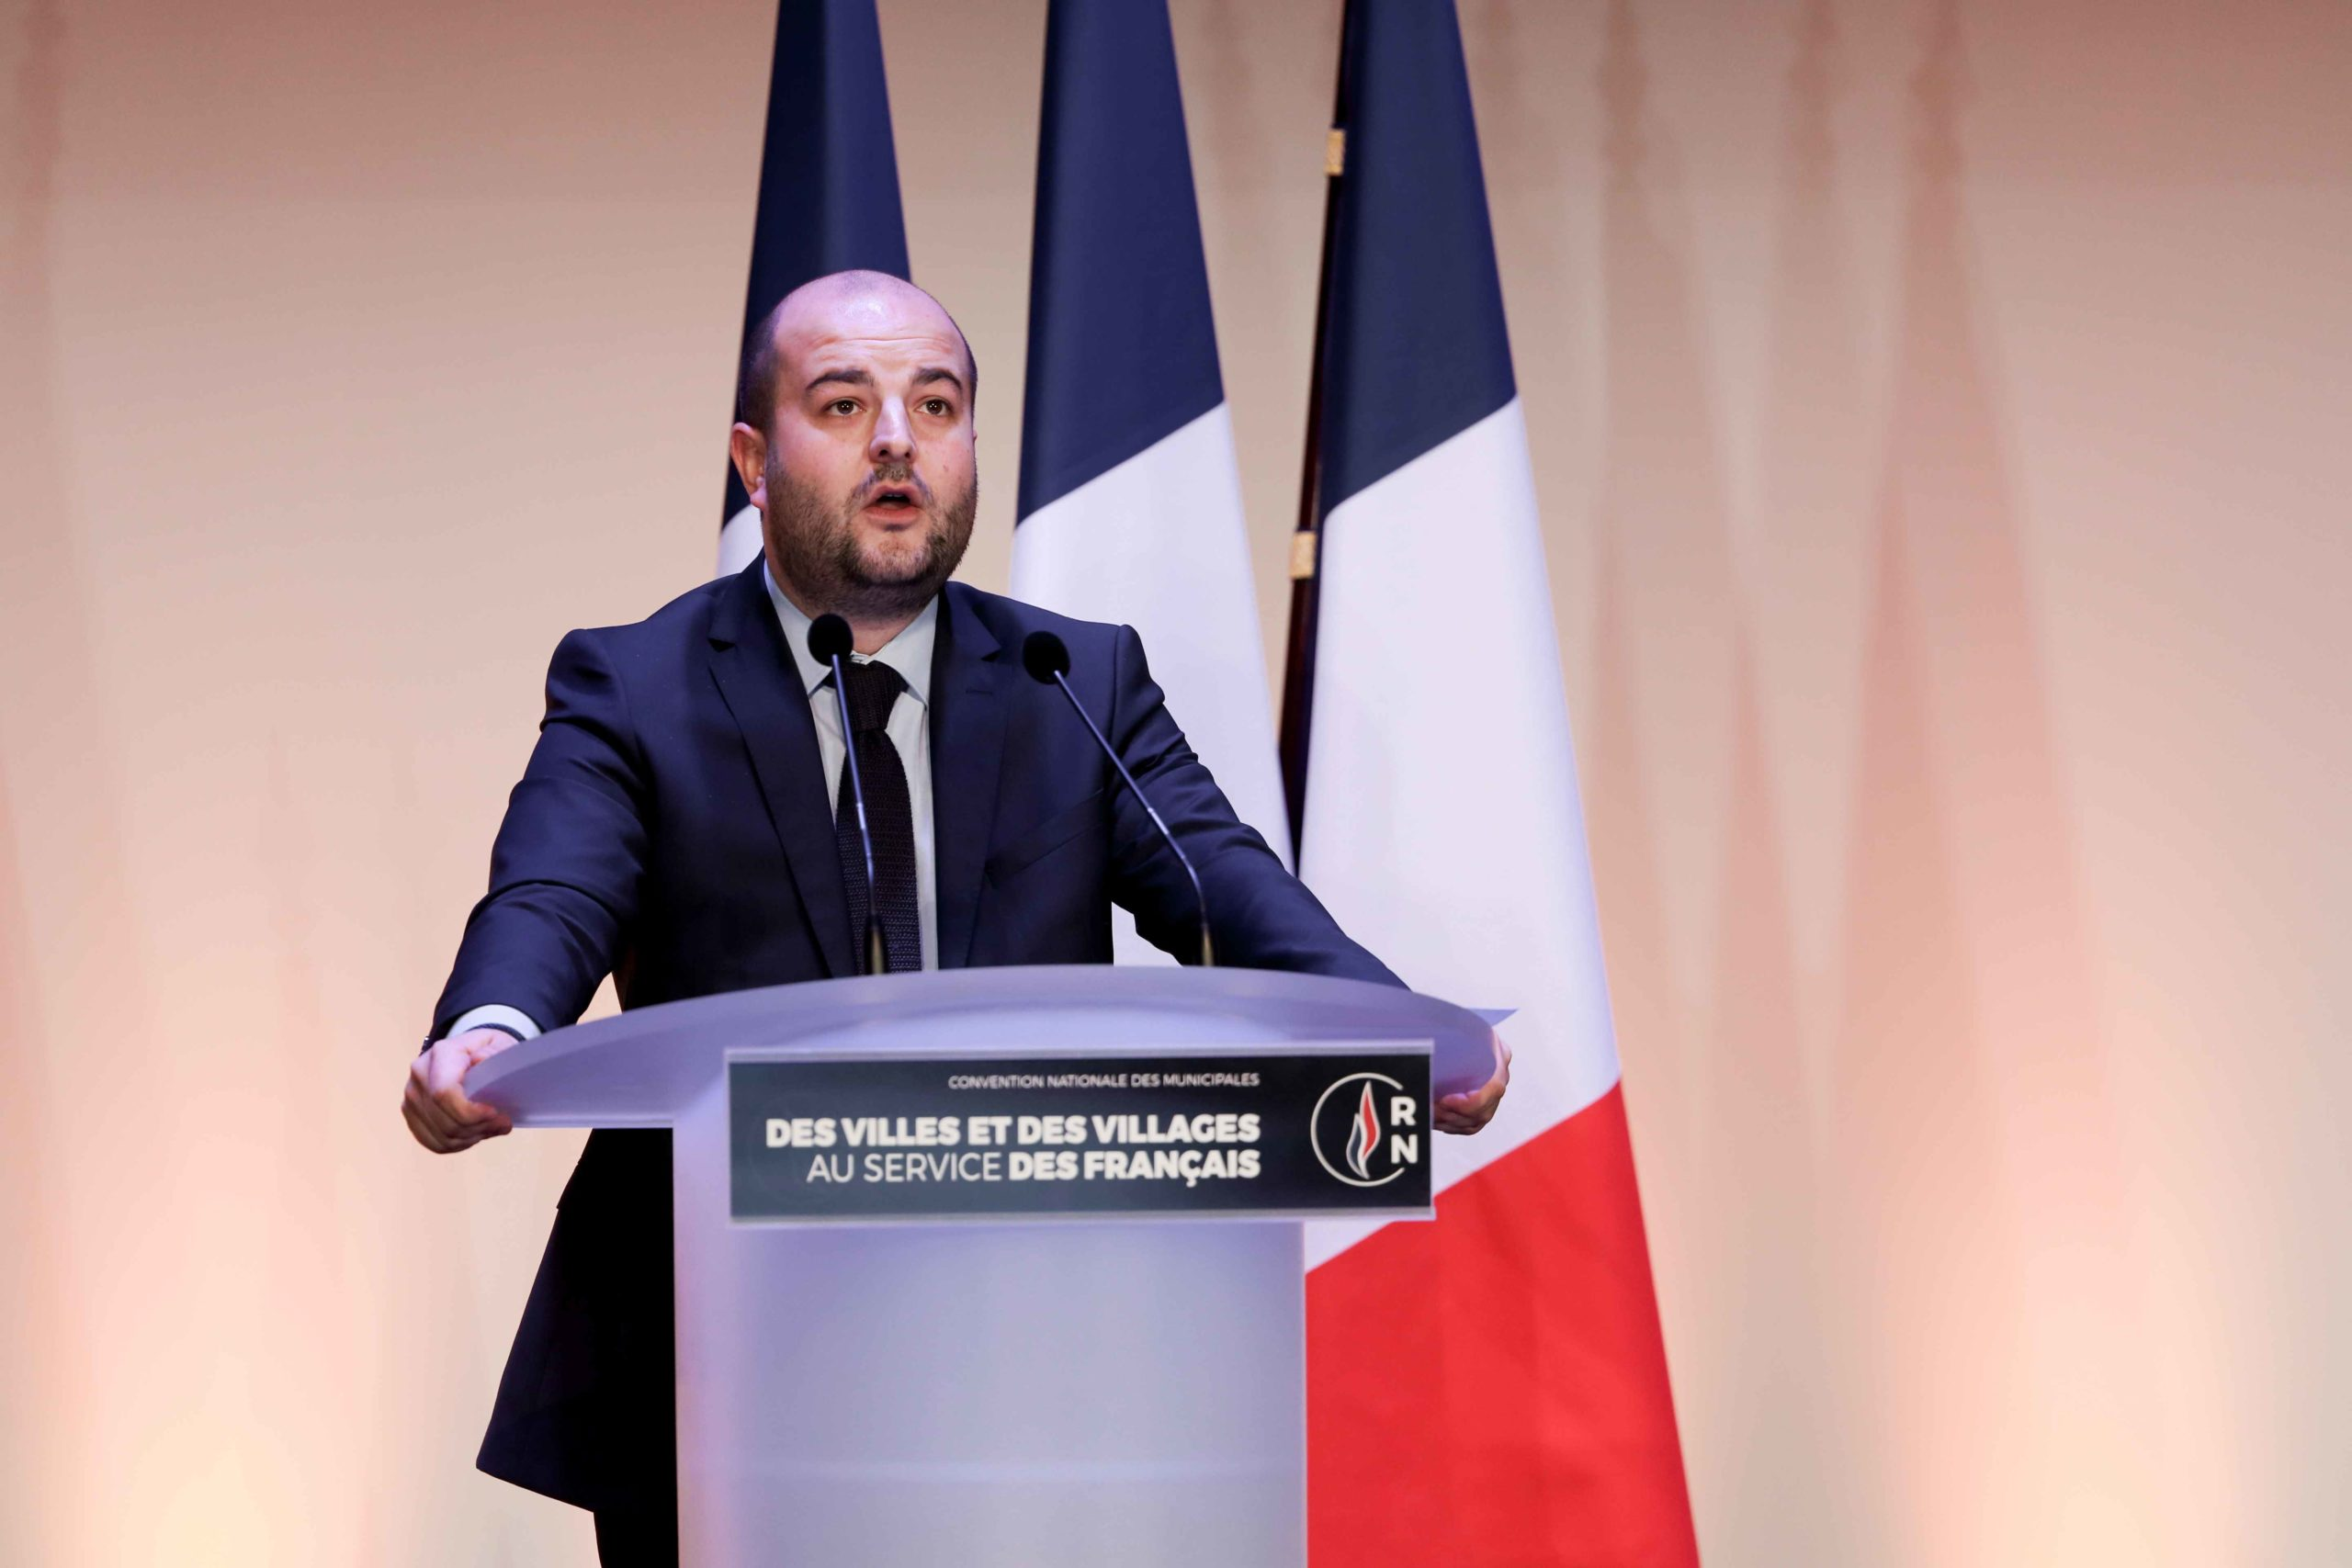 David Rachline, Mayor of Fréjus (Var) and the Rassemblement national (RN) candidate for re-election in the forthcoming mayoral election, speaks in Paris, on January 12, 2020, during a meeting to launch the RN campaign candidates for the next municipal ele